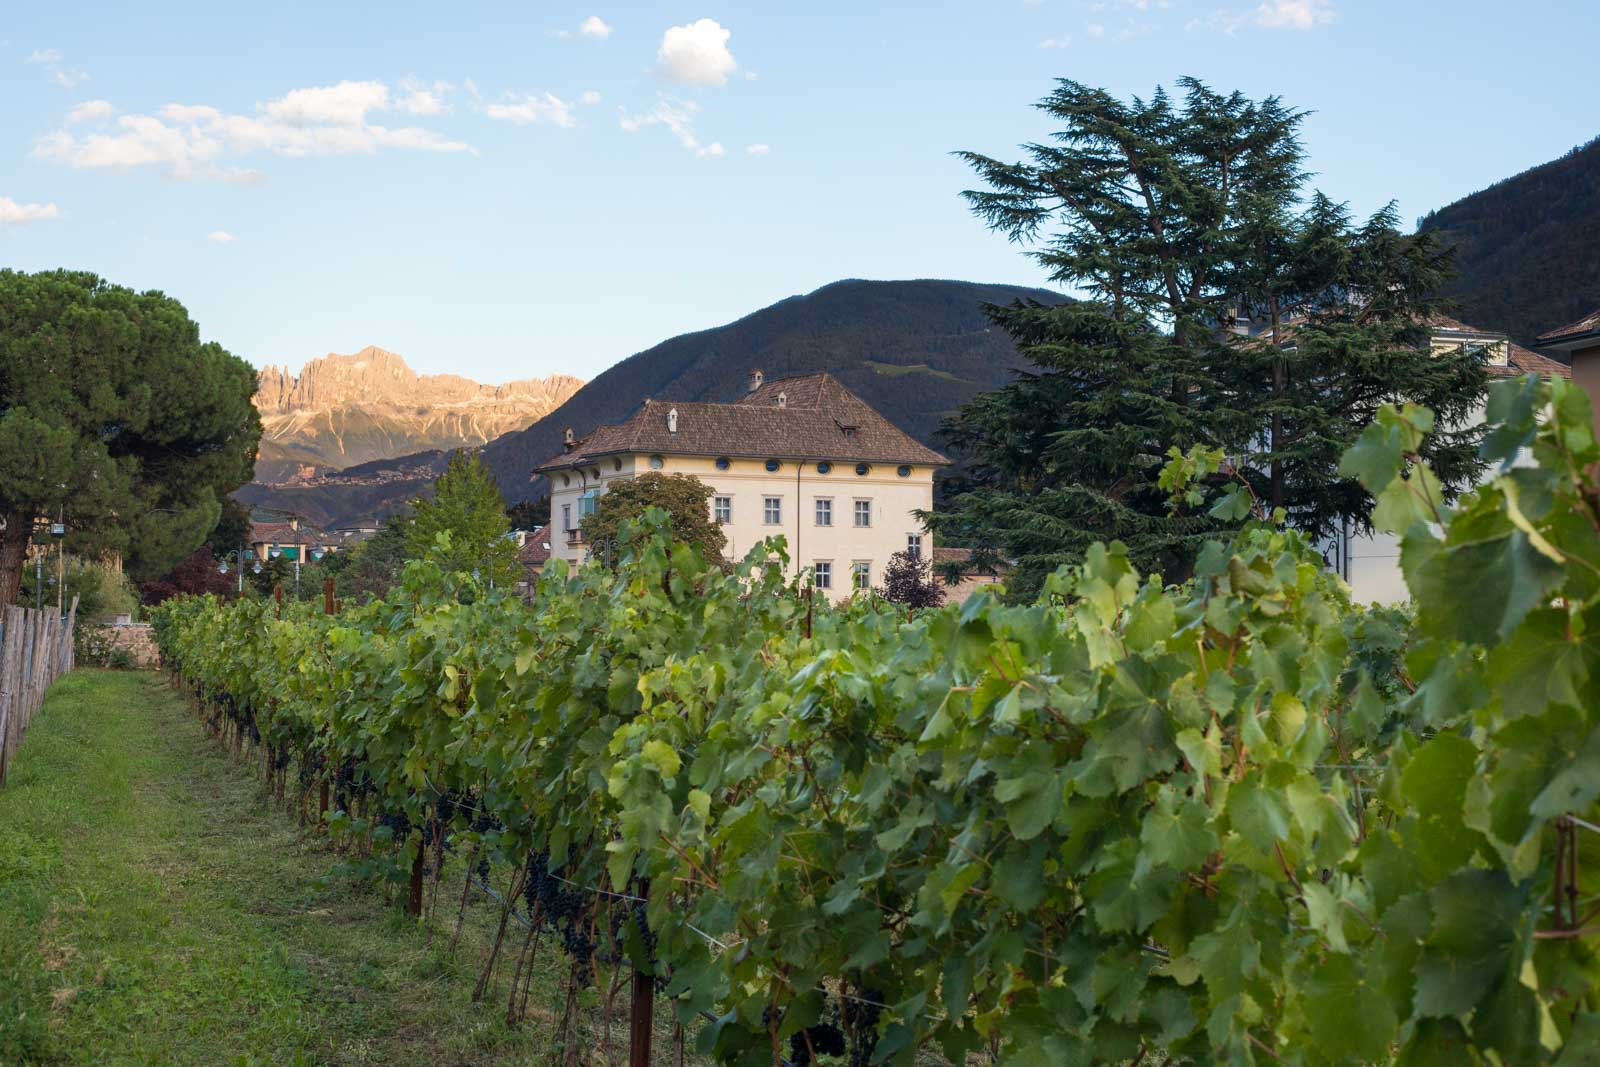 Lagrein vineyards in the city of Bolzano with the Rosengarten group of the Dolomites in the distance. ©Kevin Day/Opening a Bottle